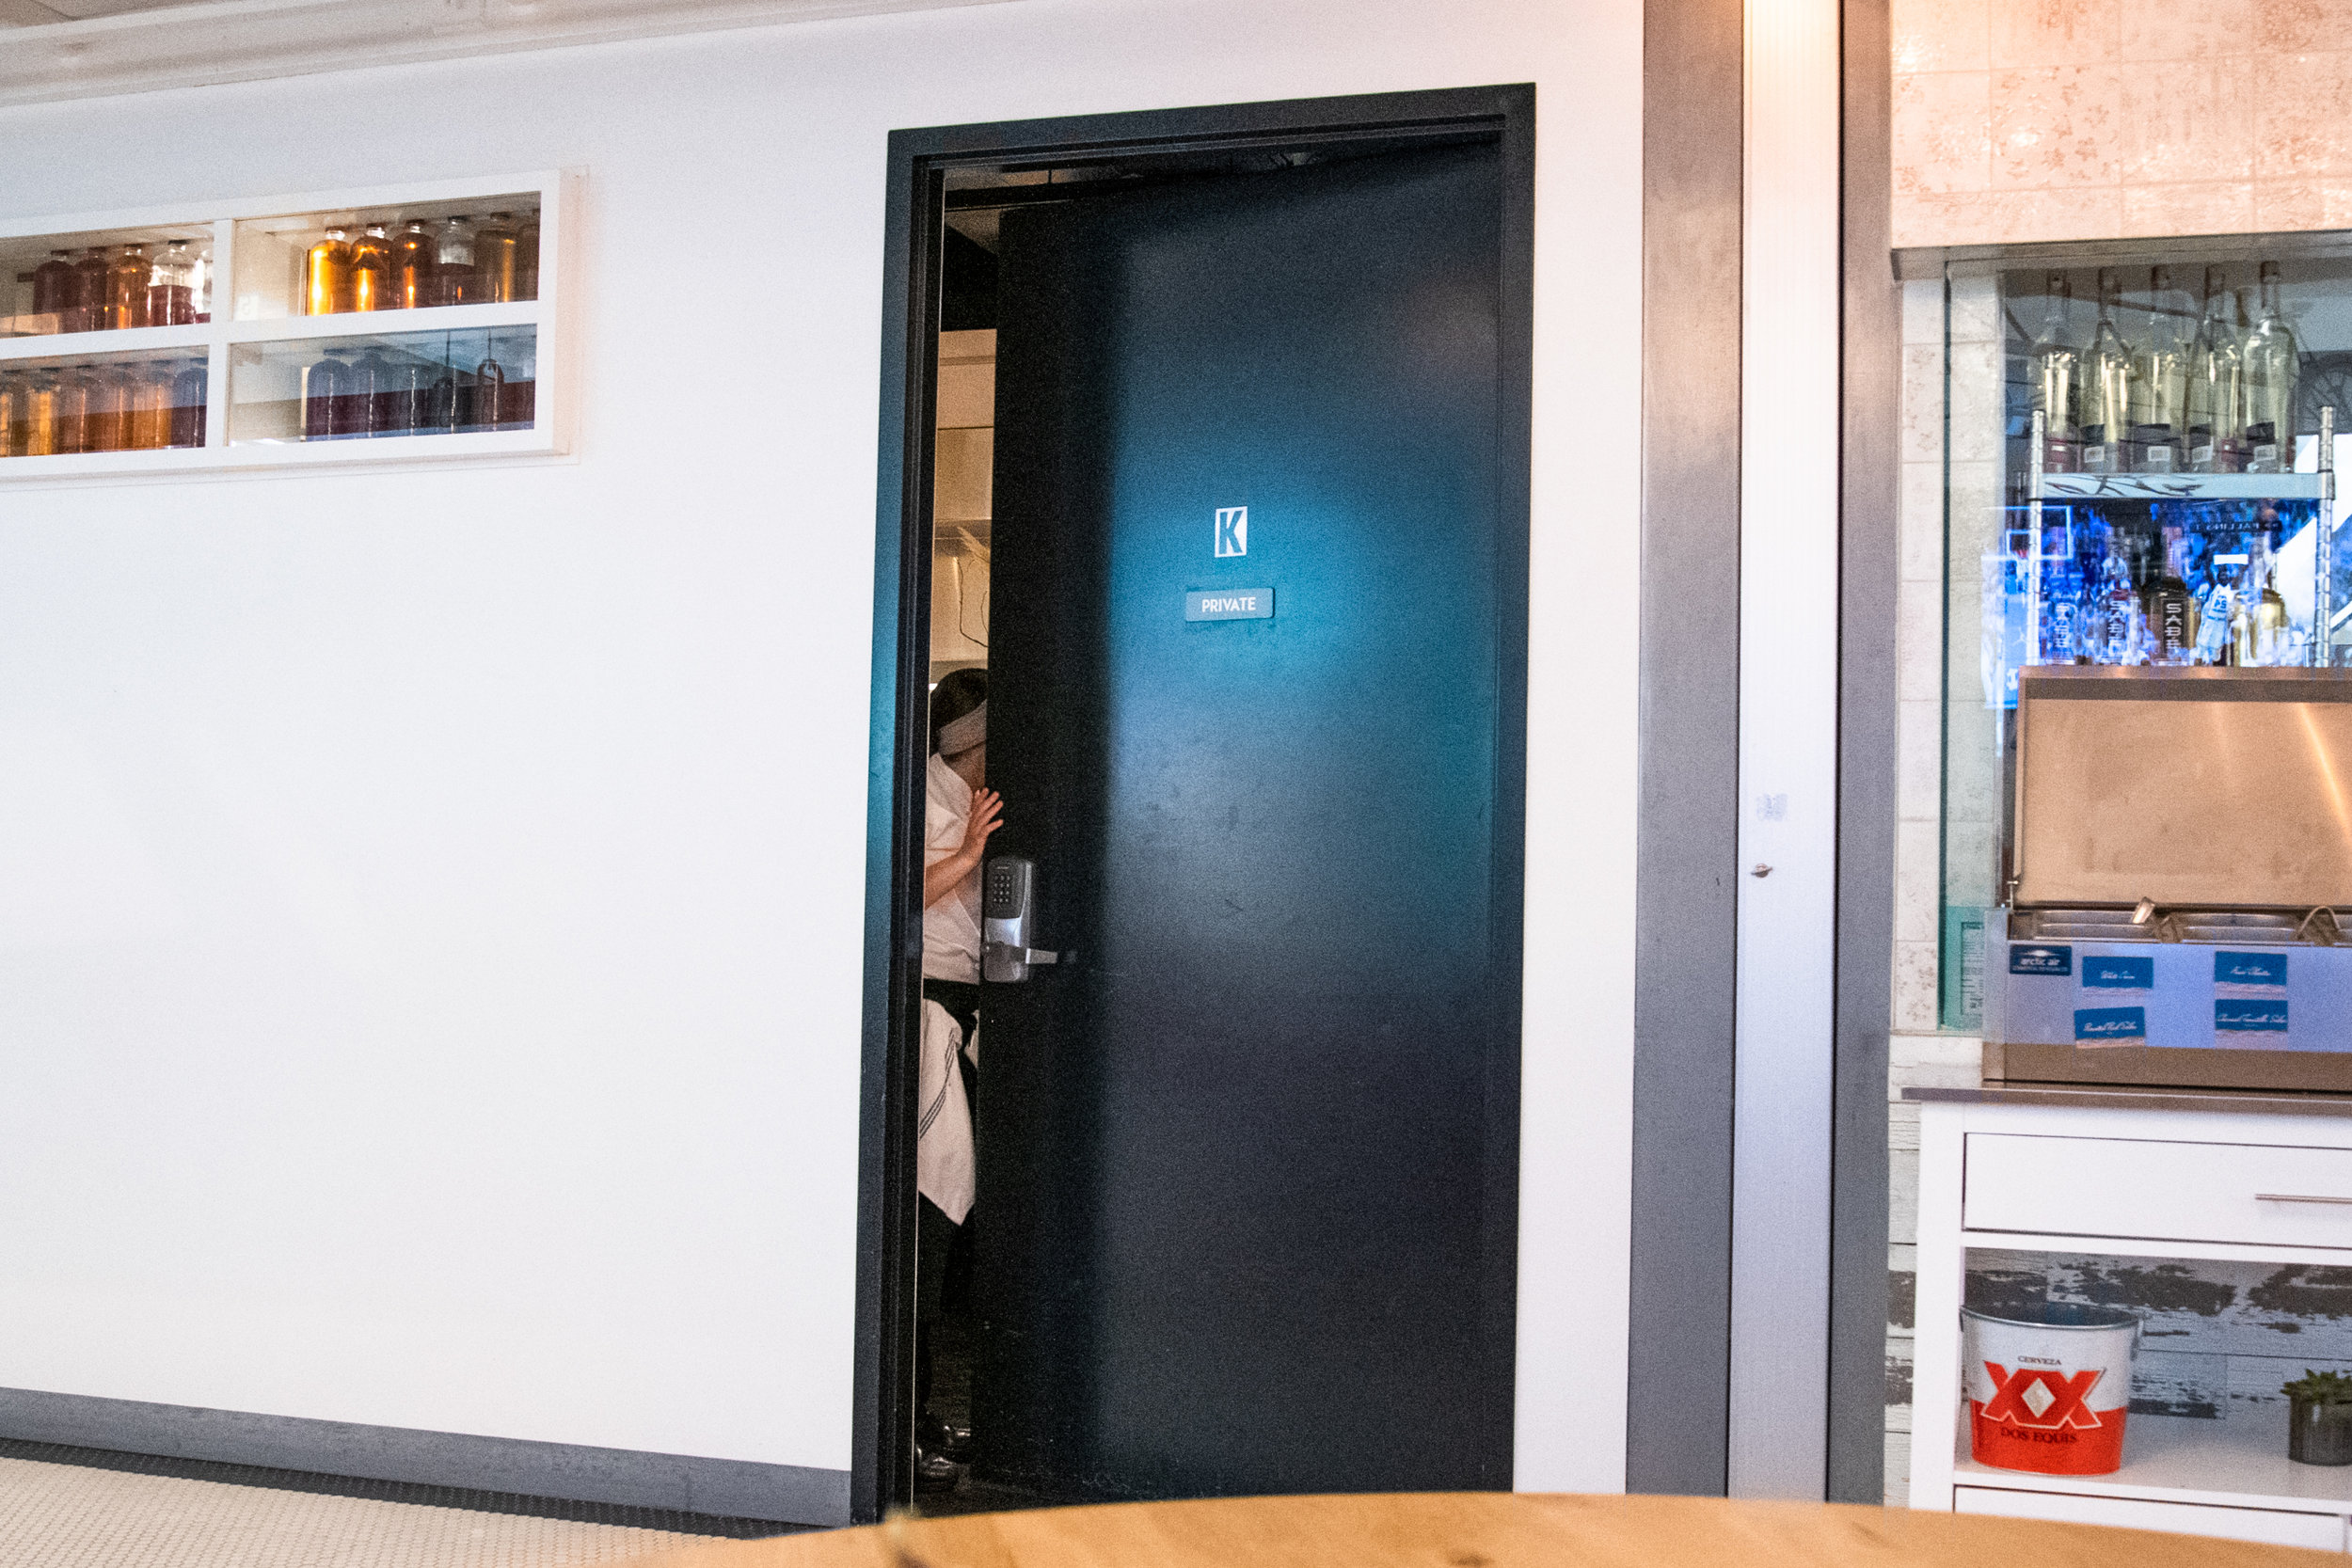 """An inconspicuous black door labeled """"Private"""" leads to a 20-course intimate restaurant inside of a food court off of Santa Monica's 3rd Street Promenade, Thursday, March 21, 2019, in Santa Monica, Calif. The restaurant's name is Dialogue, with acclaimed head chef Dave Beran cooking up seasonal offerings that change monthly. (Nicole Haun/ The Corsair)"""